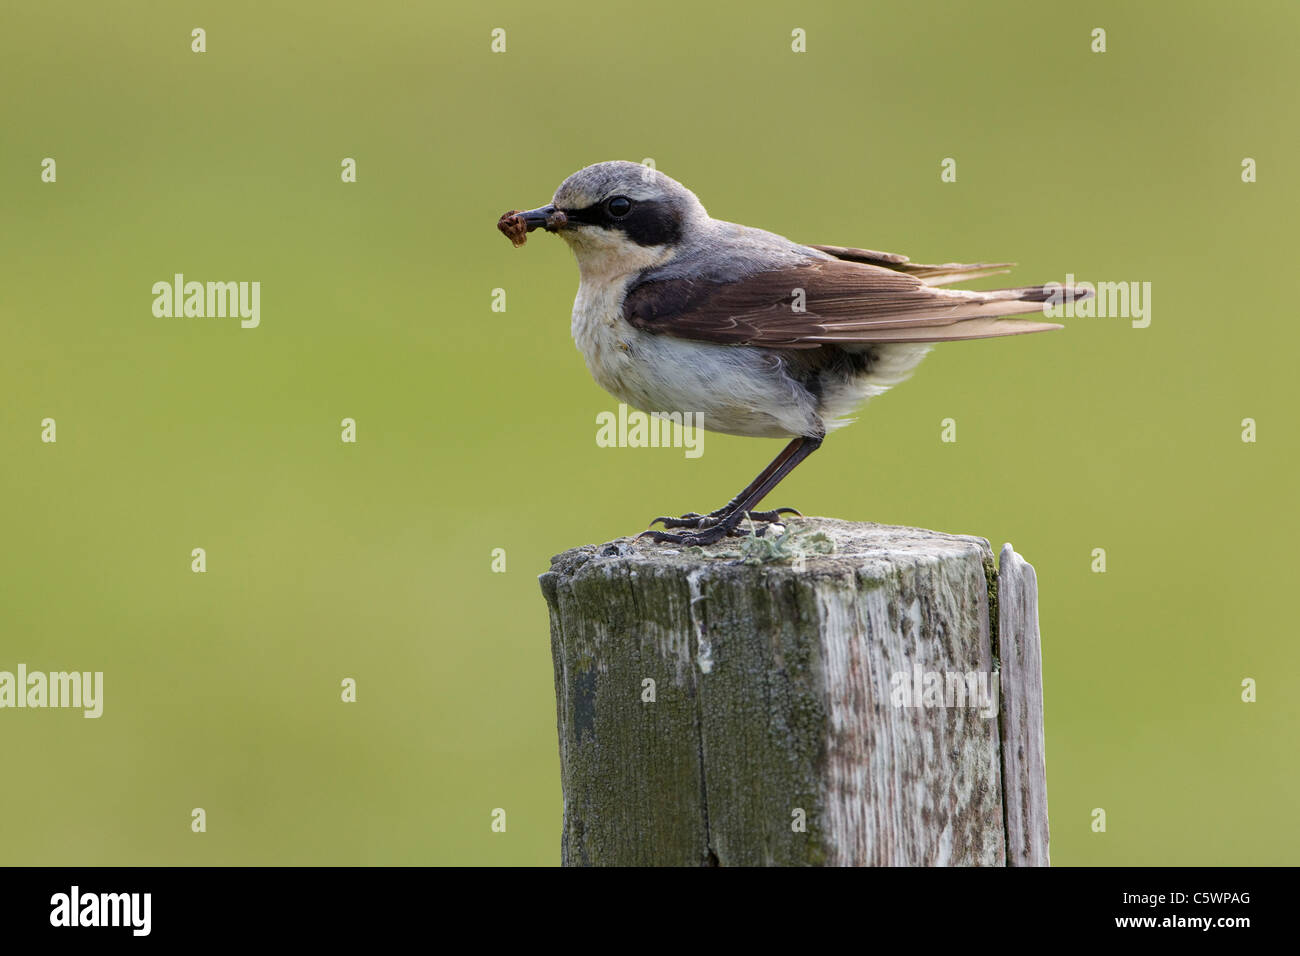 Northern Wheatear (Oenanthe oenanthe). Male perched on fence post with food for chicks. - Stock Image